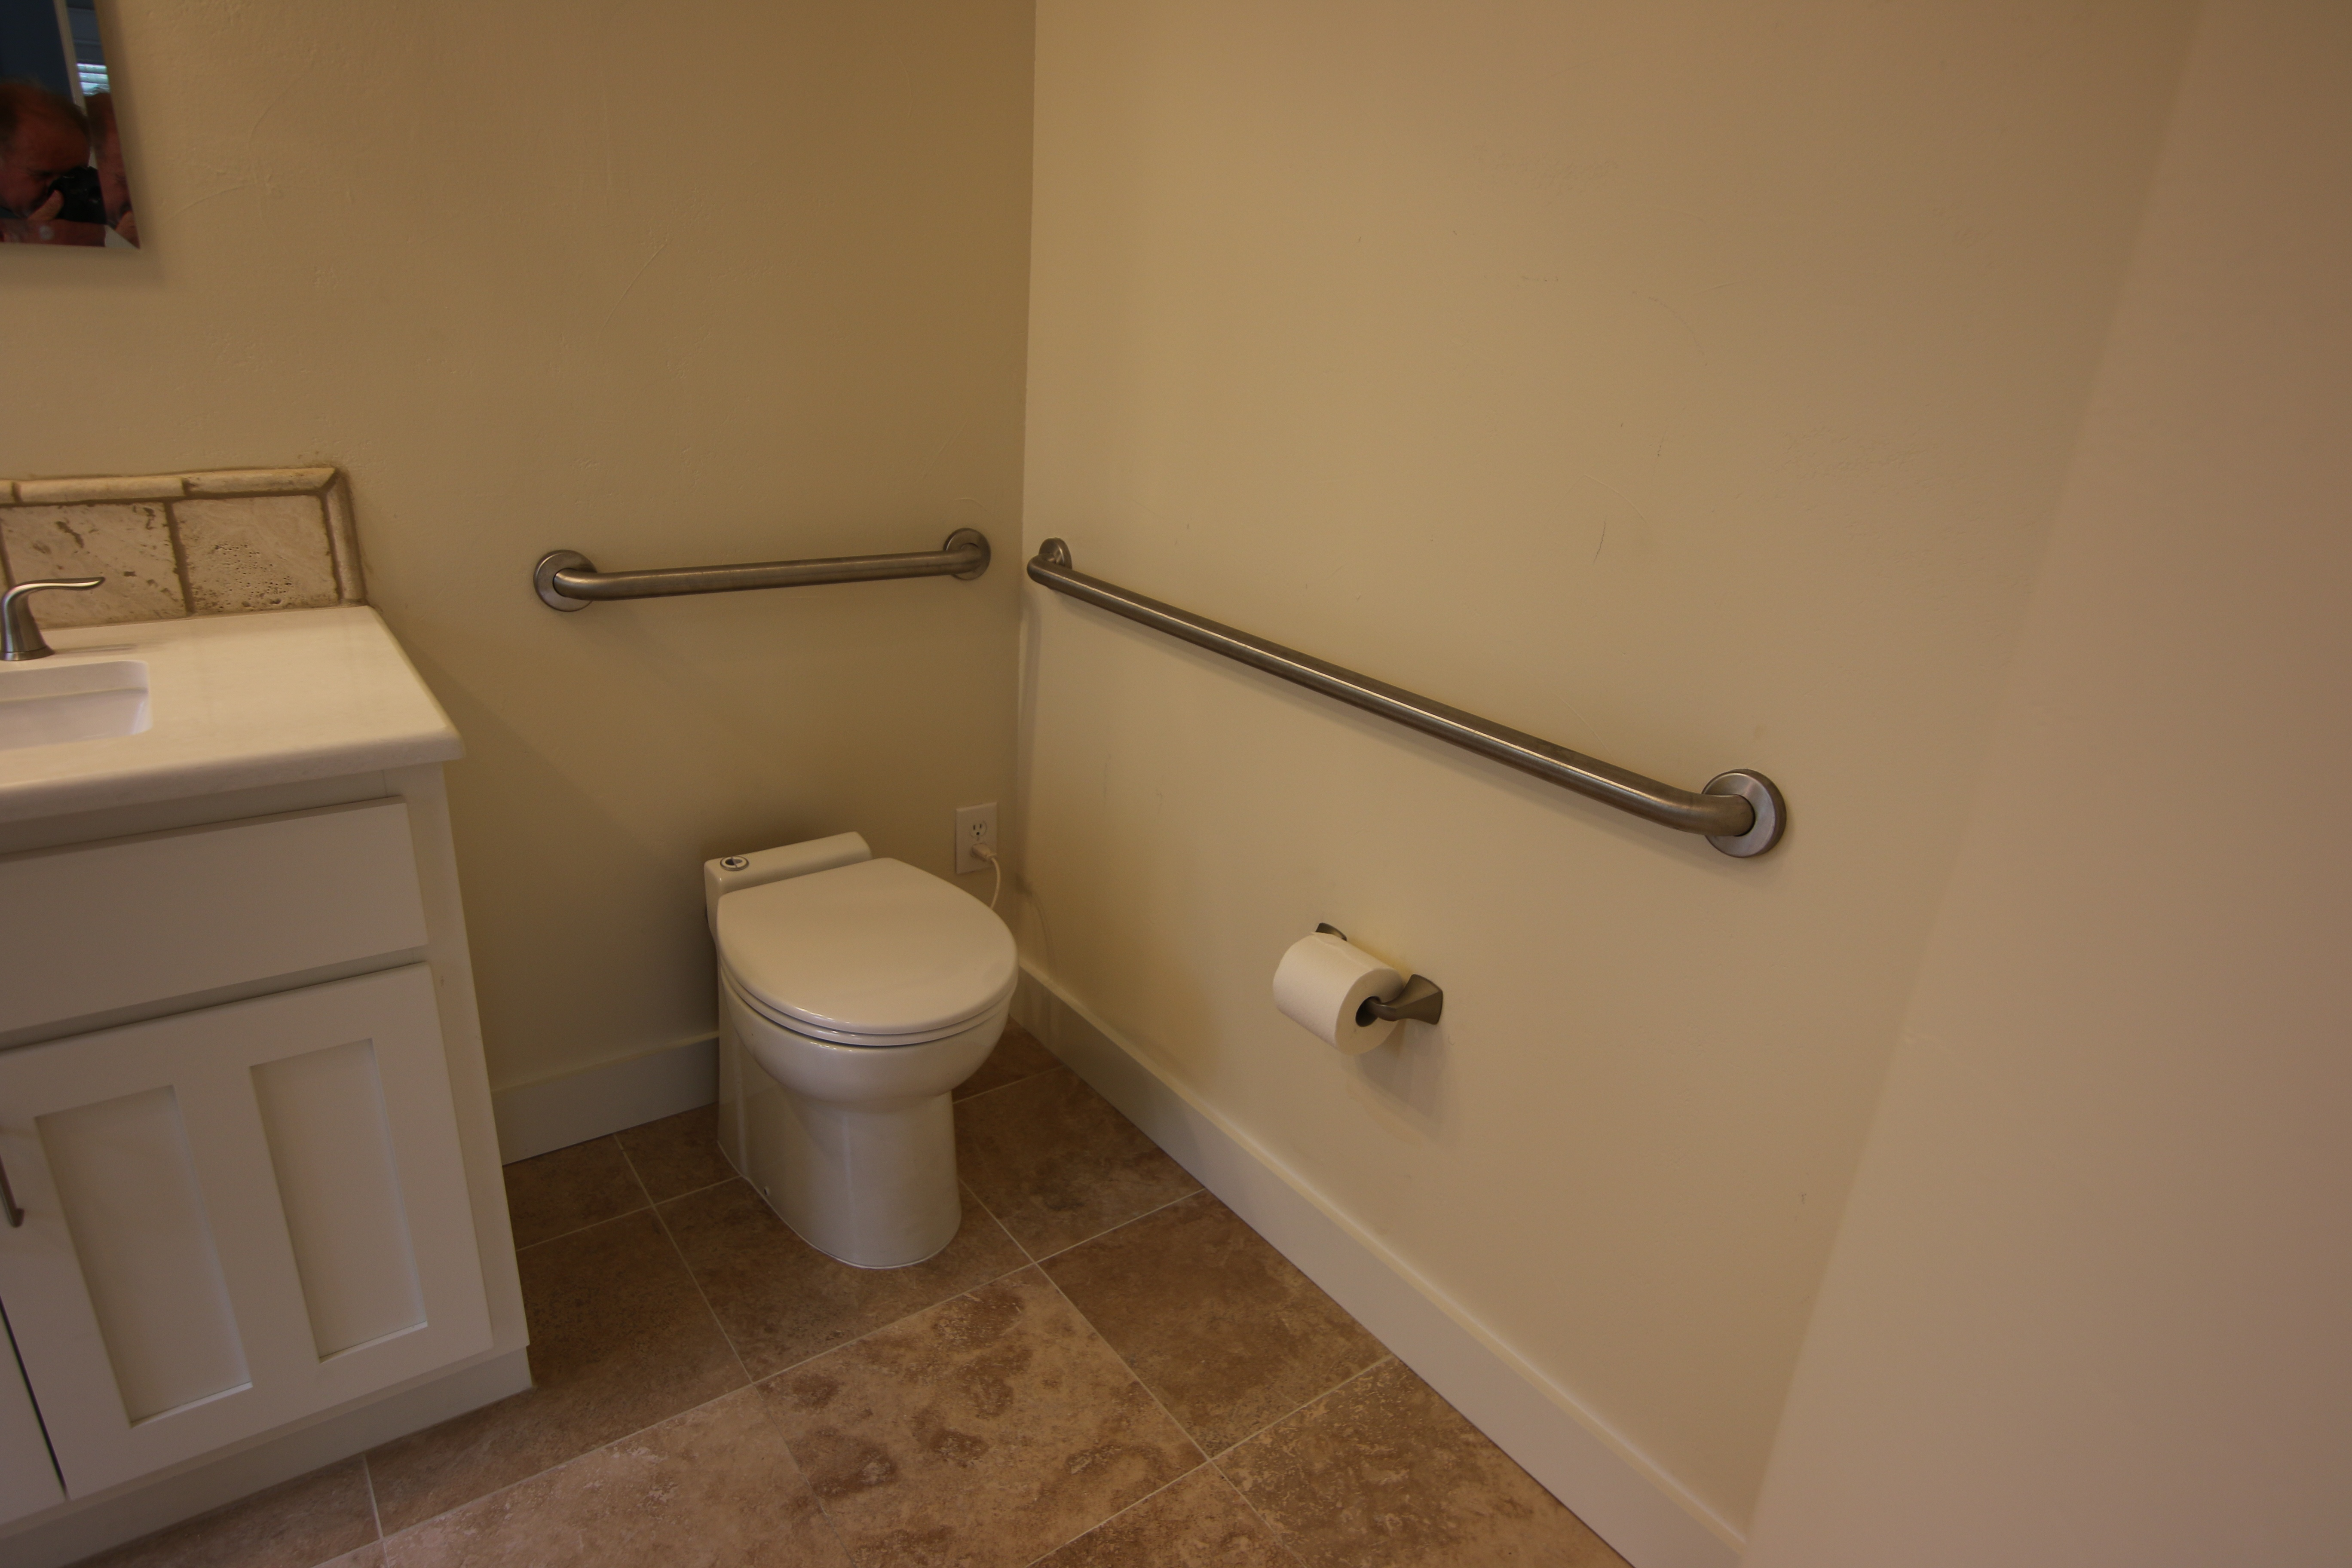 Accessible Toilets In Austin, Texas